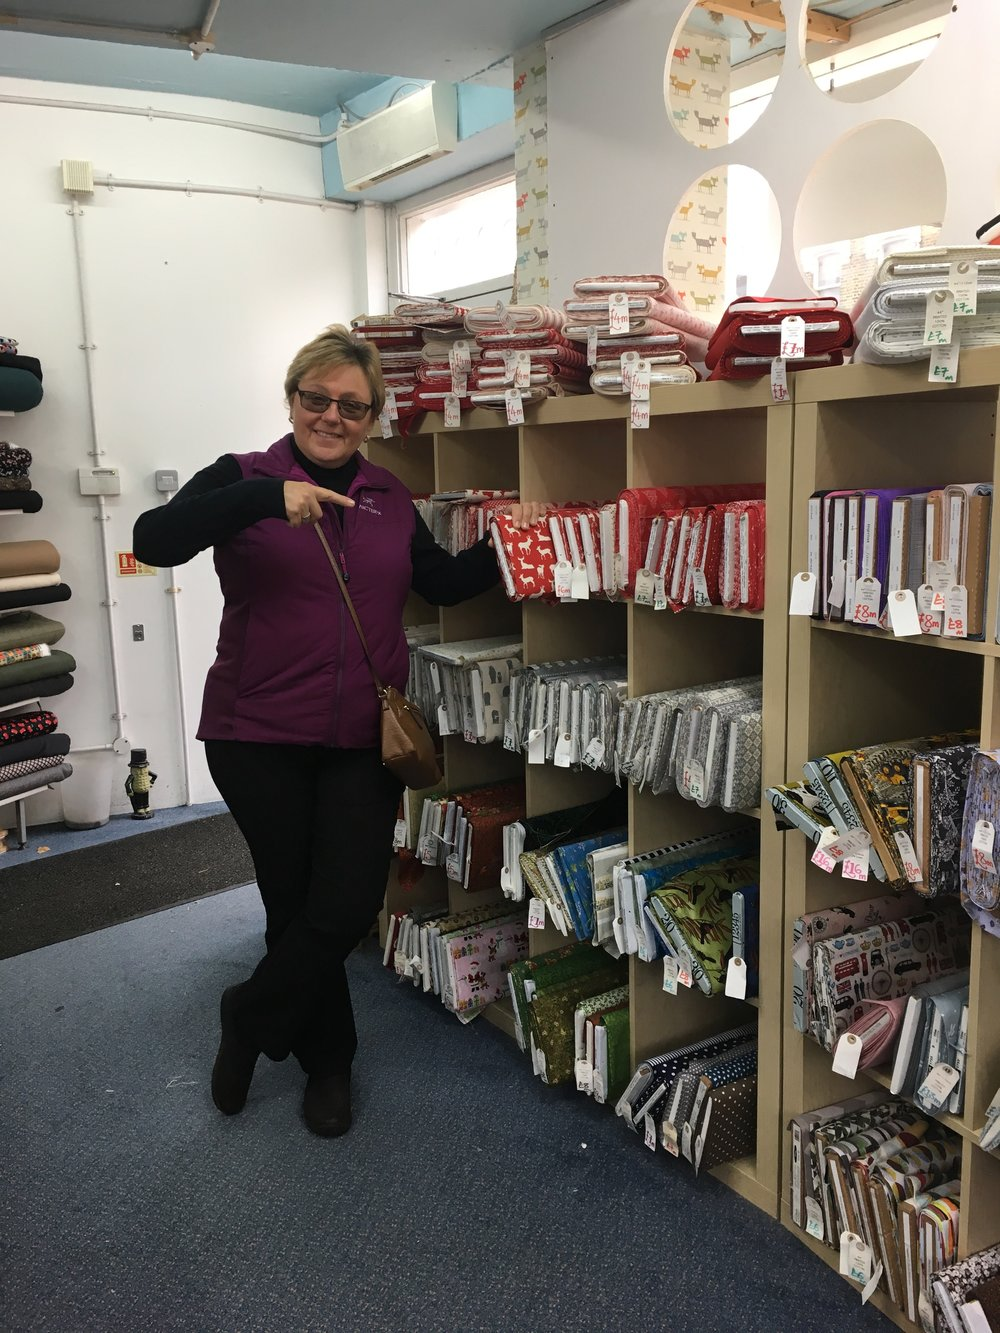 I did find a fabric shop in London.  Oh happy times!